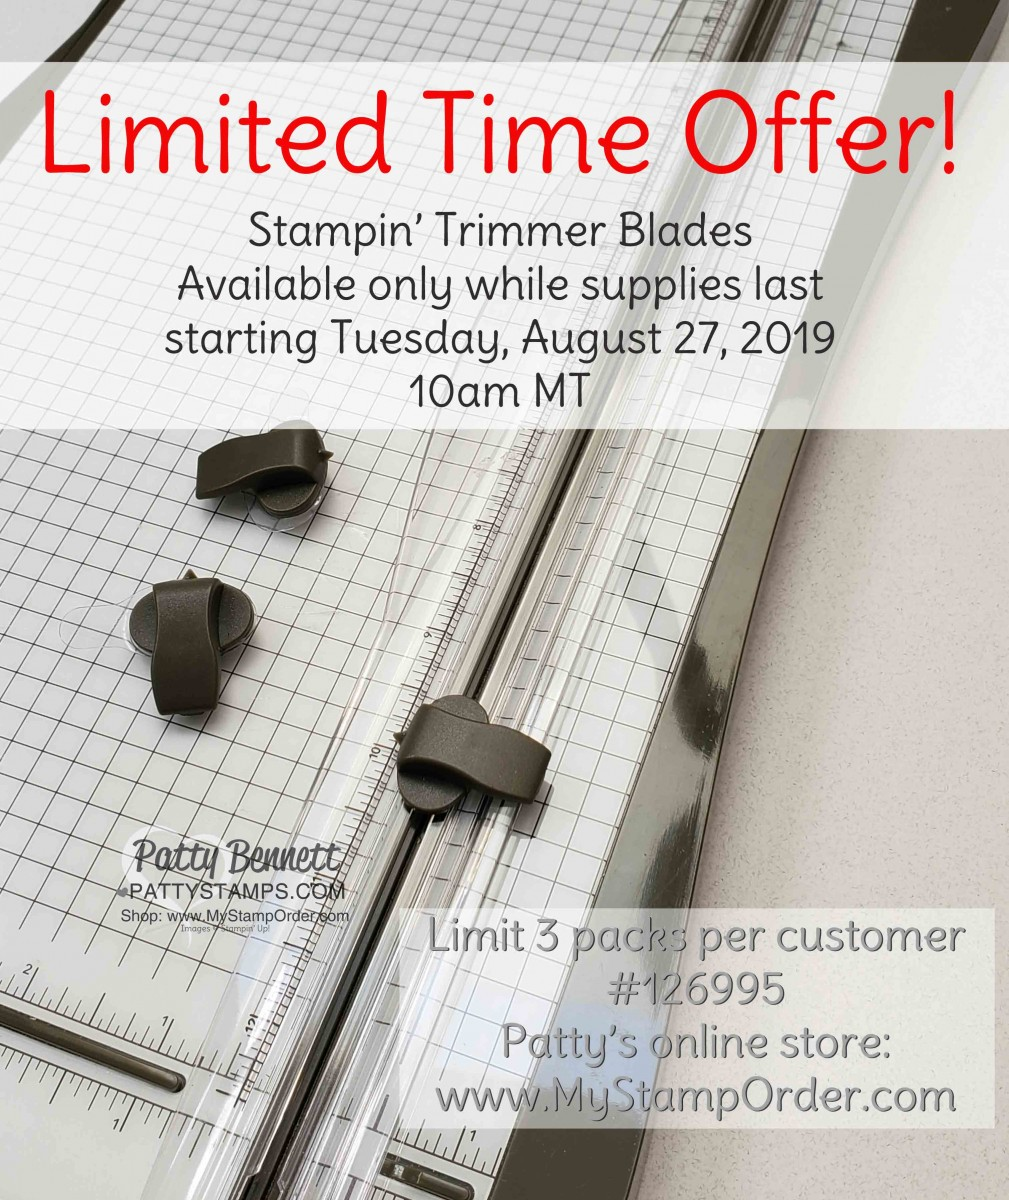 One Week Left for 2 Special Offers!